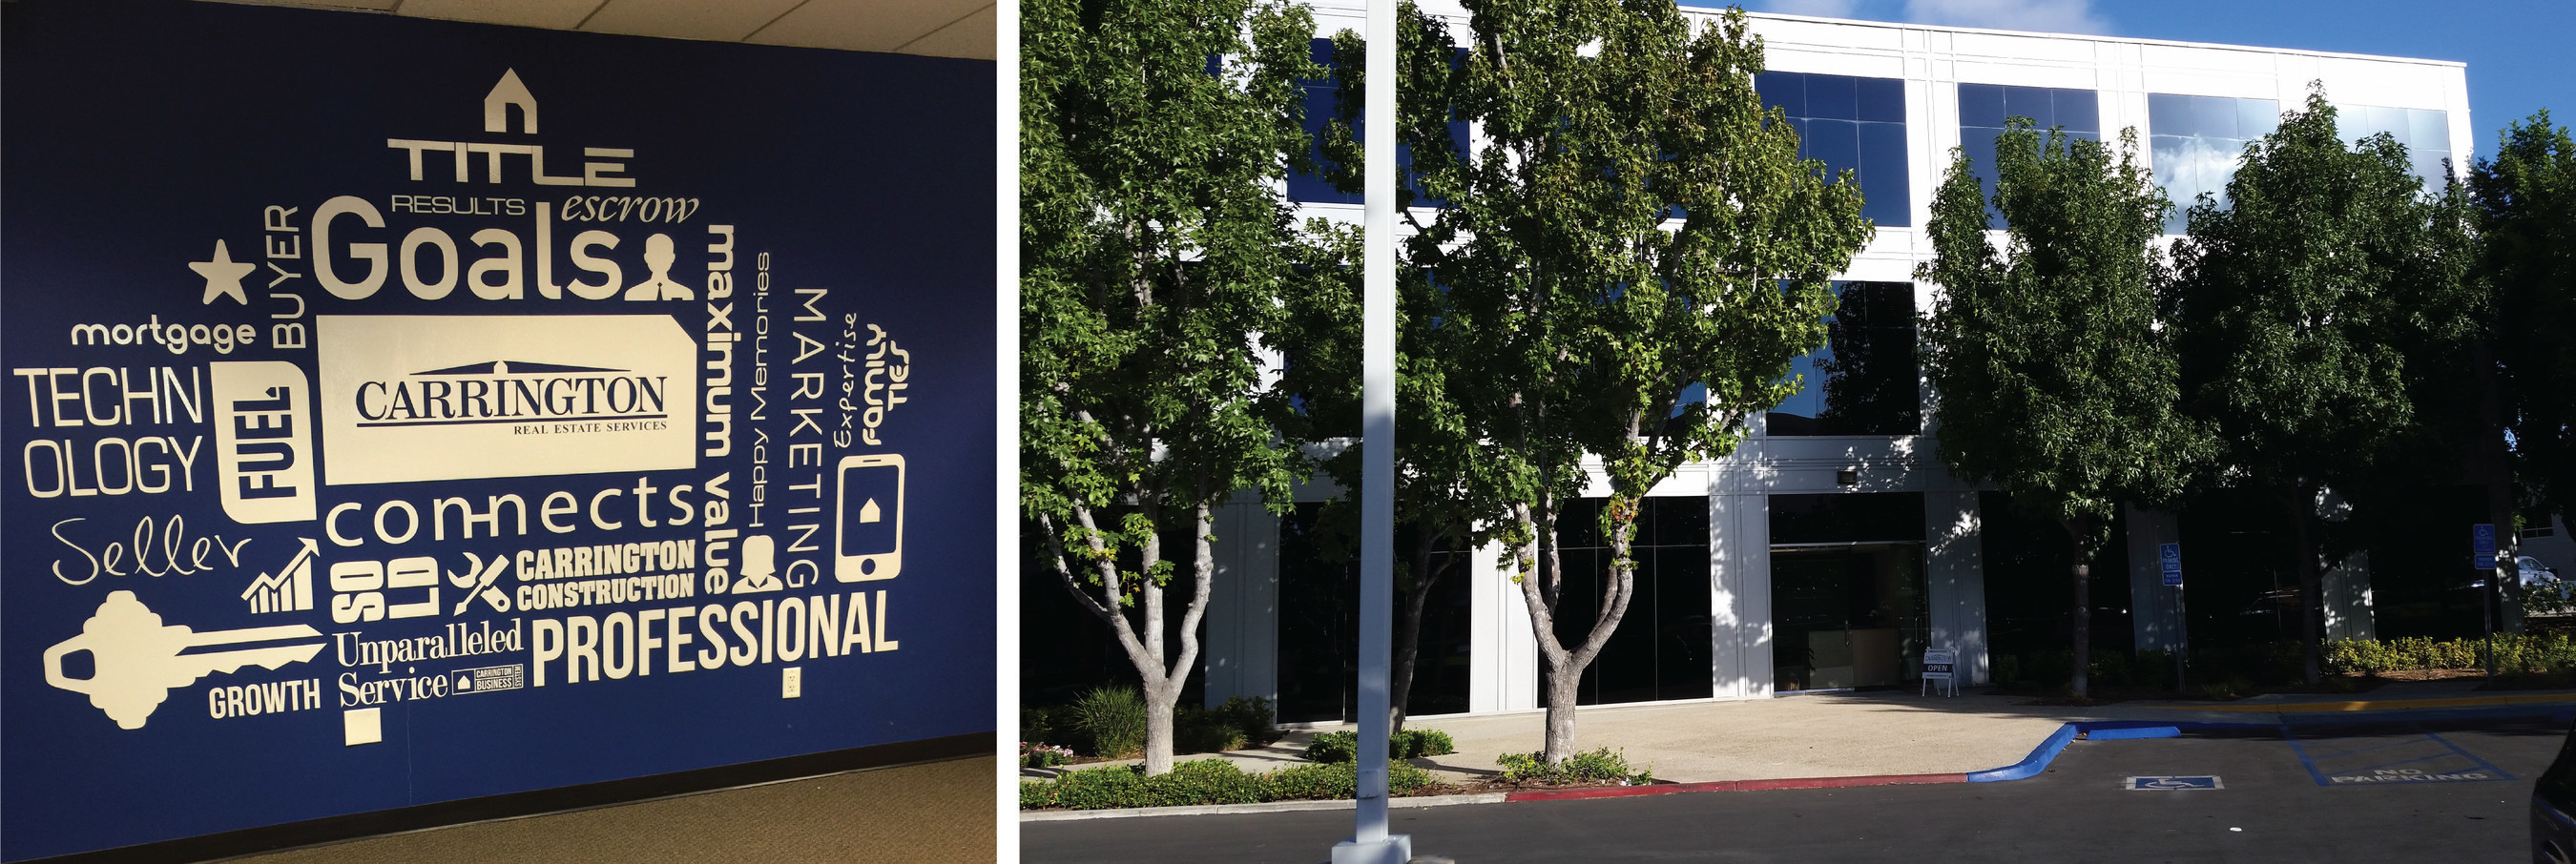 Carrington Real Estate Services' new Irvine office located at 111 Pacifica, Suite 160